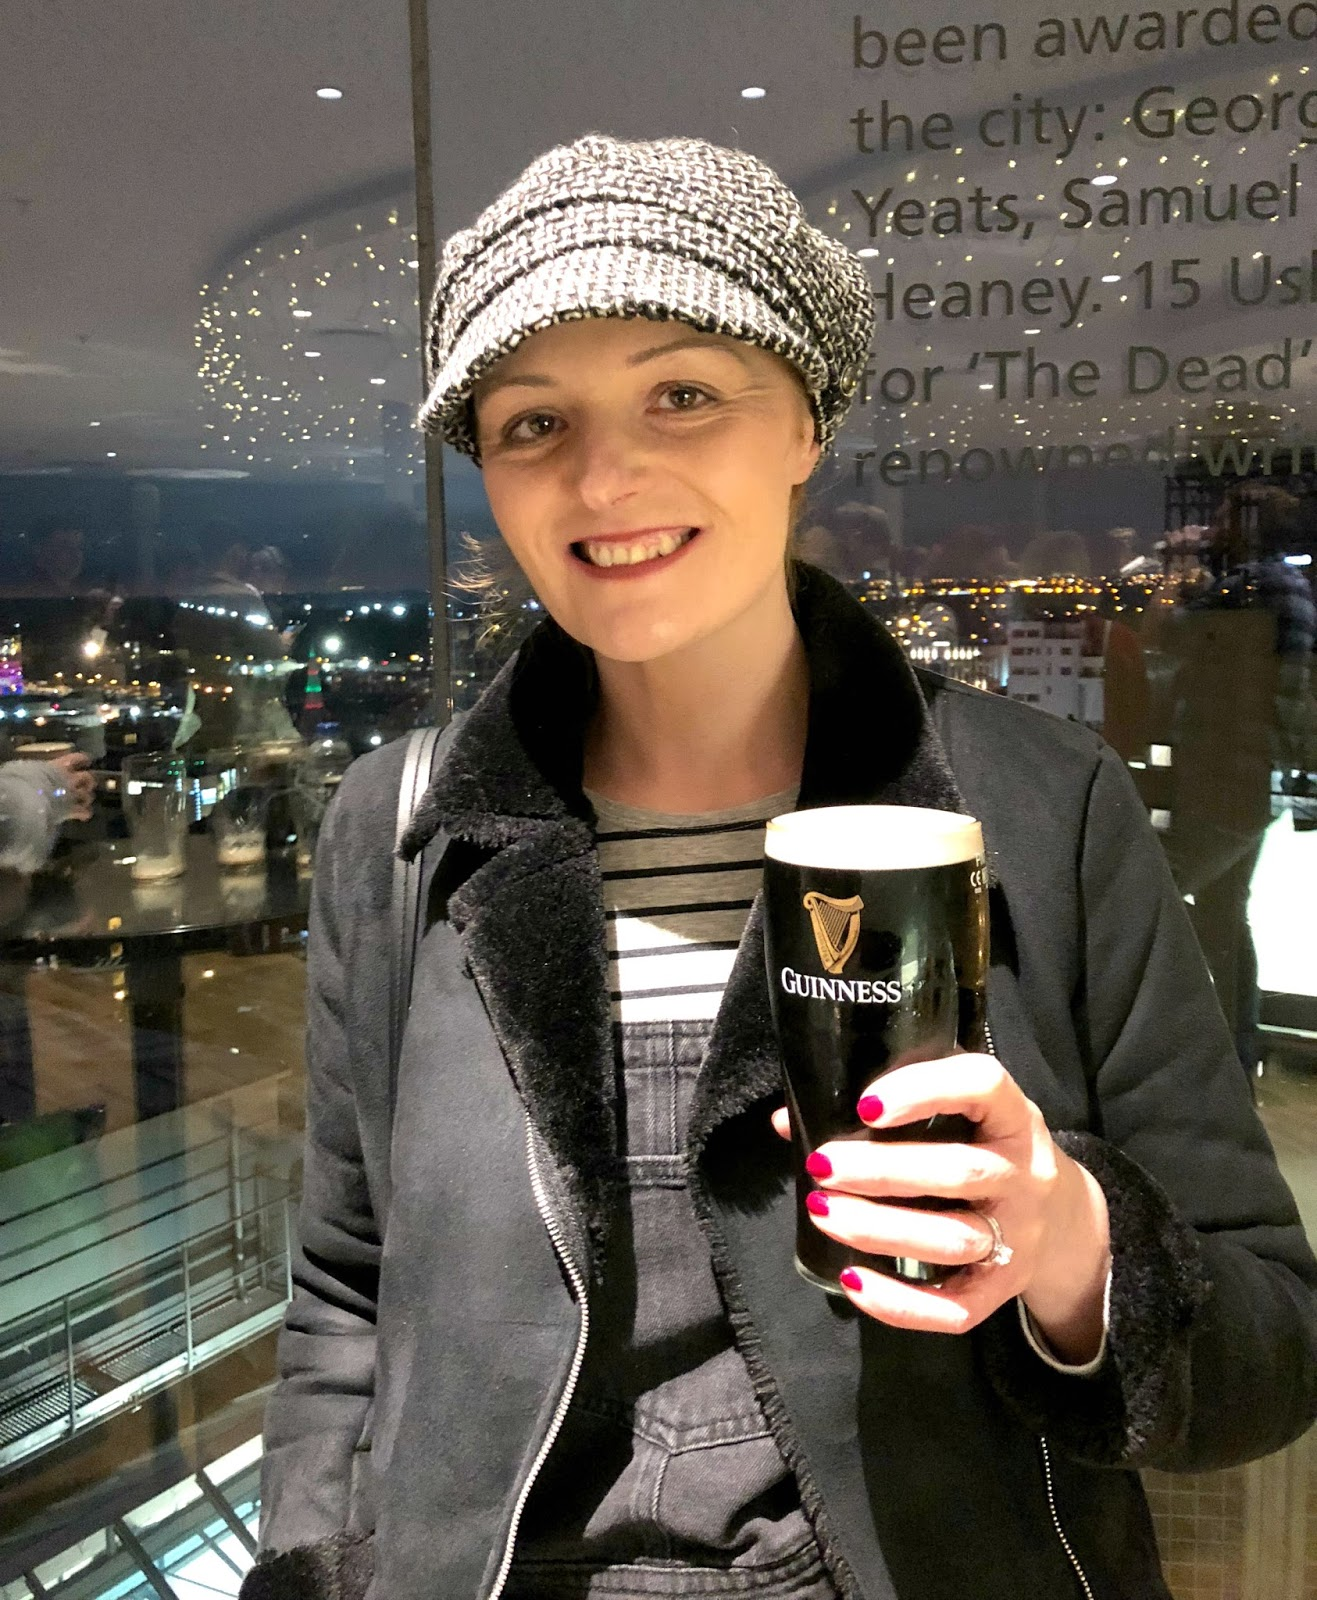 How to Spend a Weekend in Dublin - Guinness Storehouse